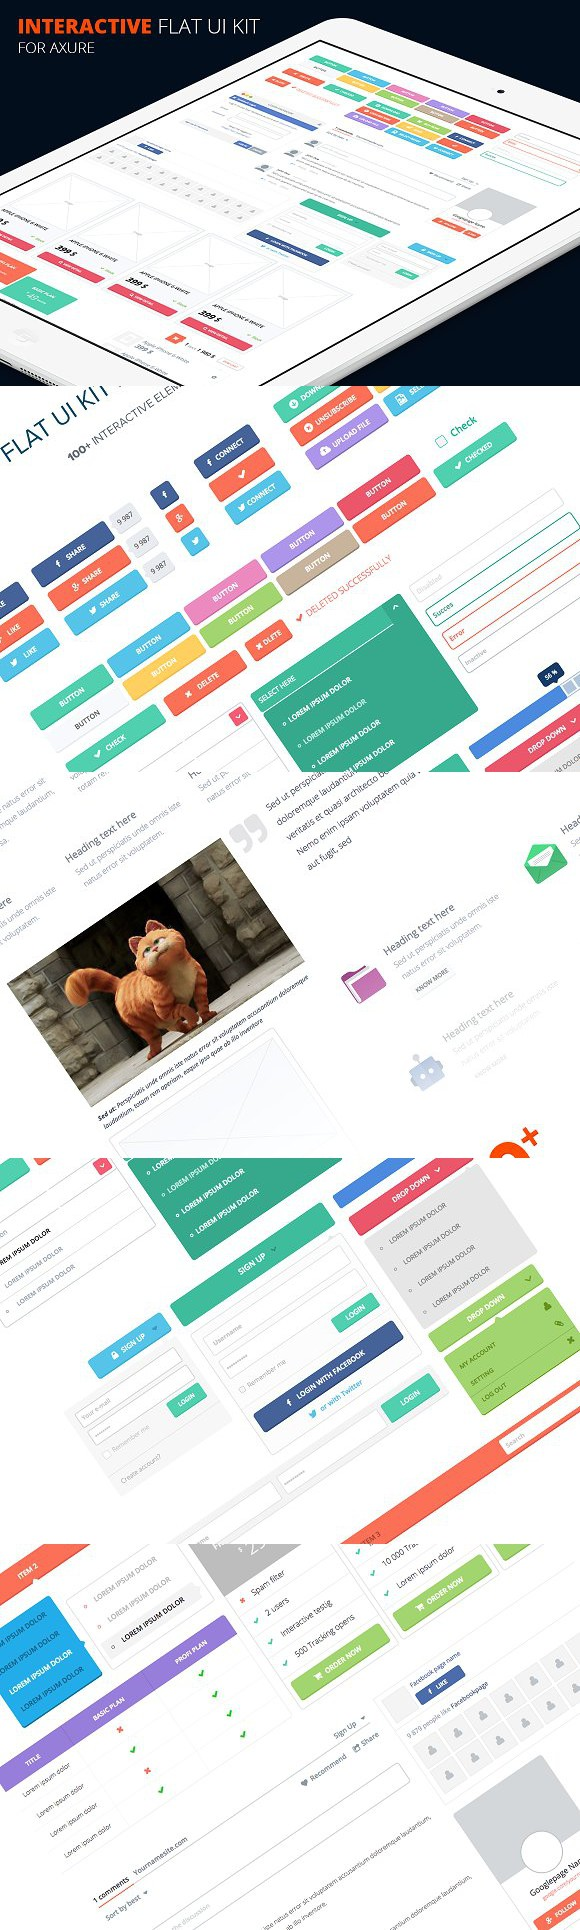 Axure flat UI kit. UI Elements Ui kit, Flat ui